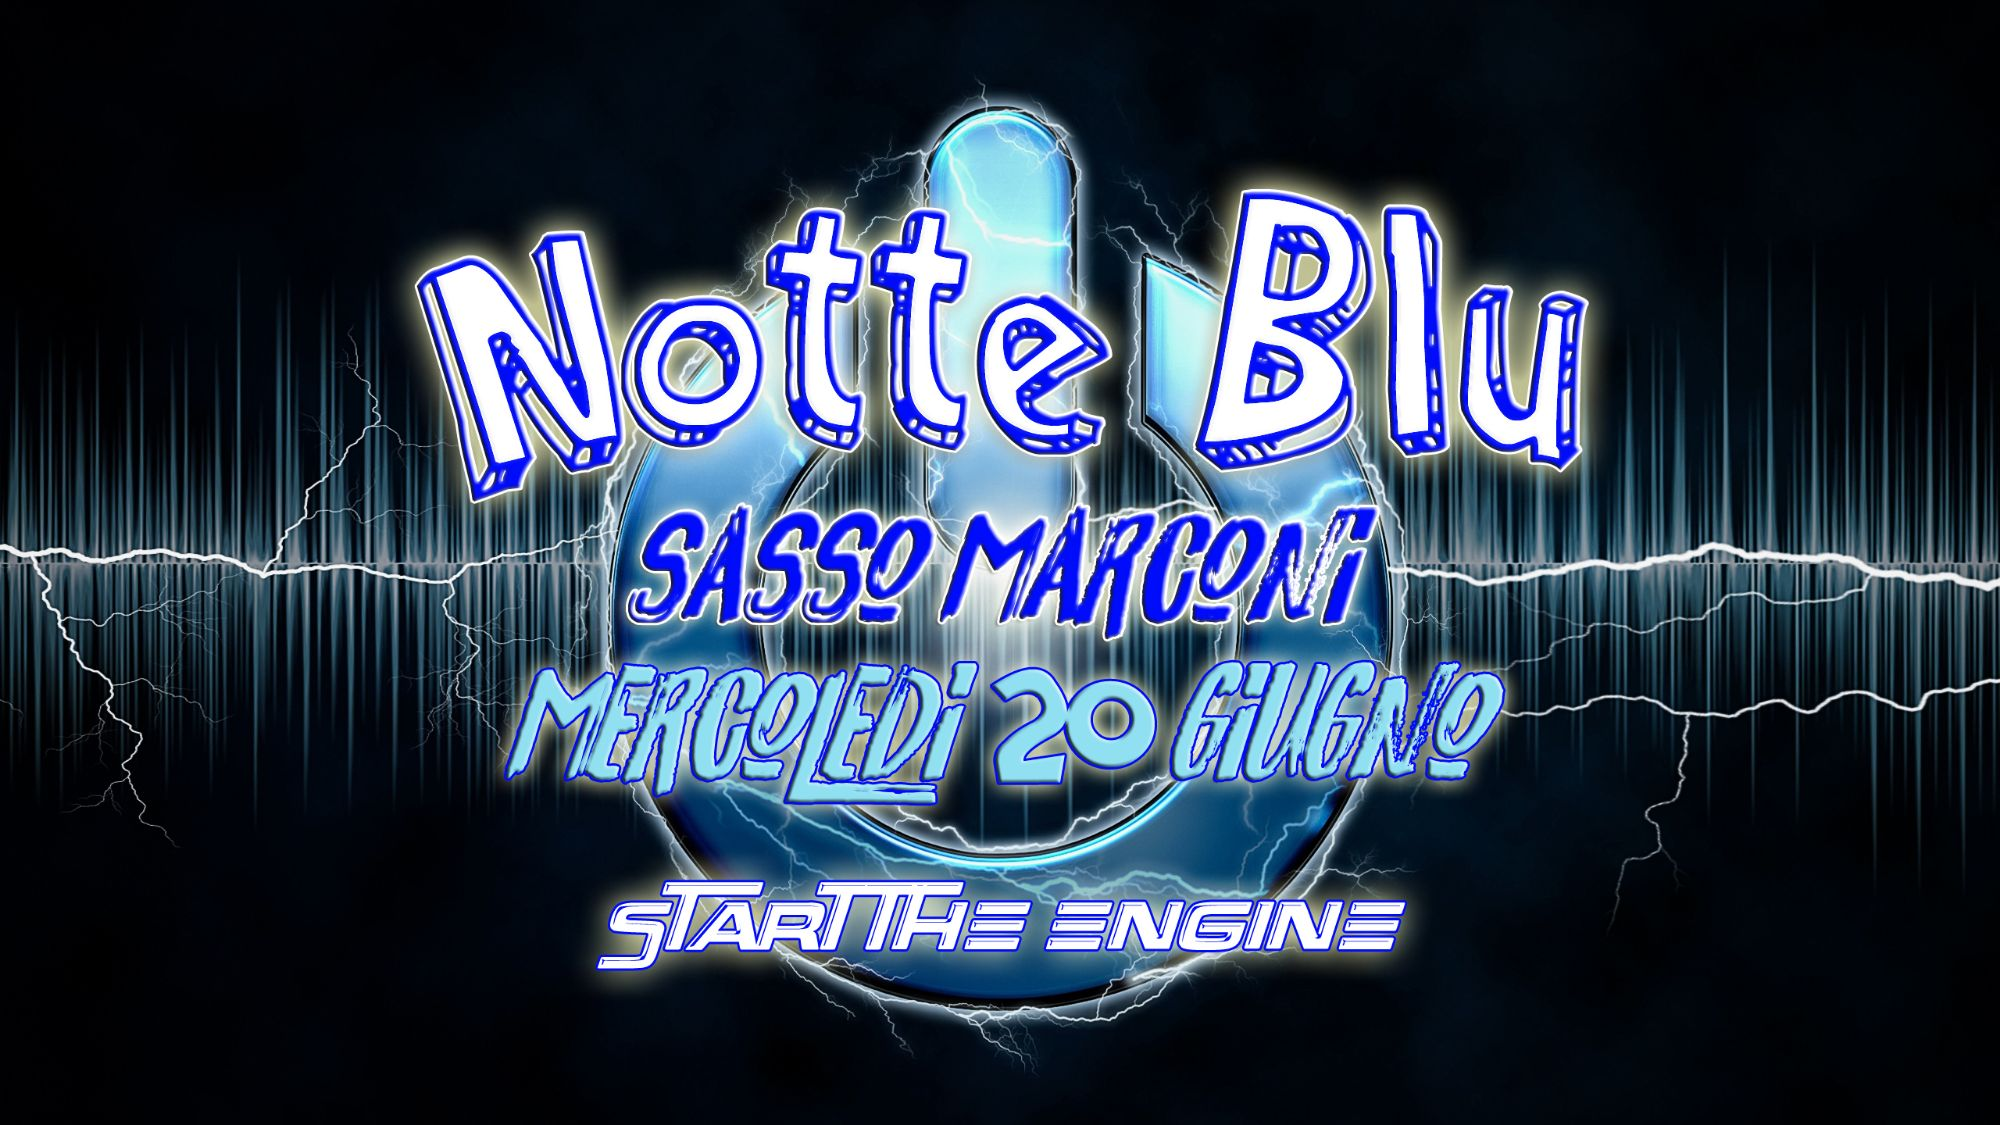 Notte Blu a Sasso Marconi